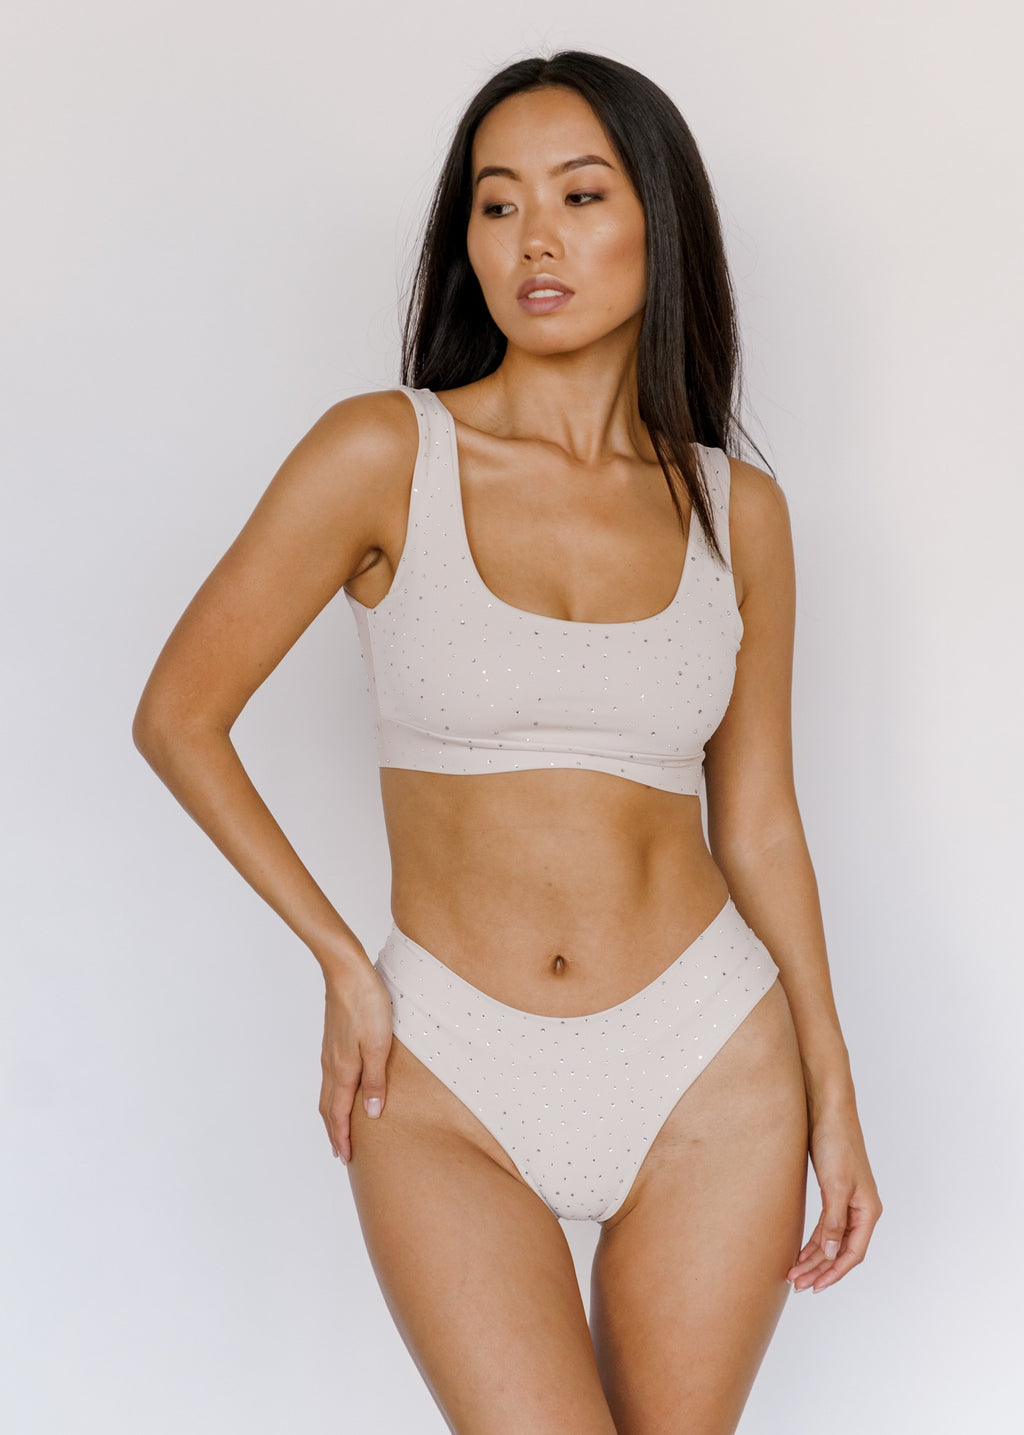 Hulla top and panties set